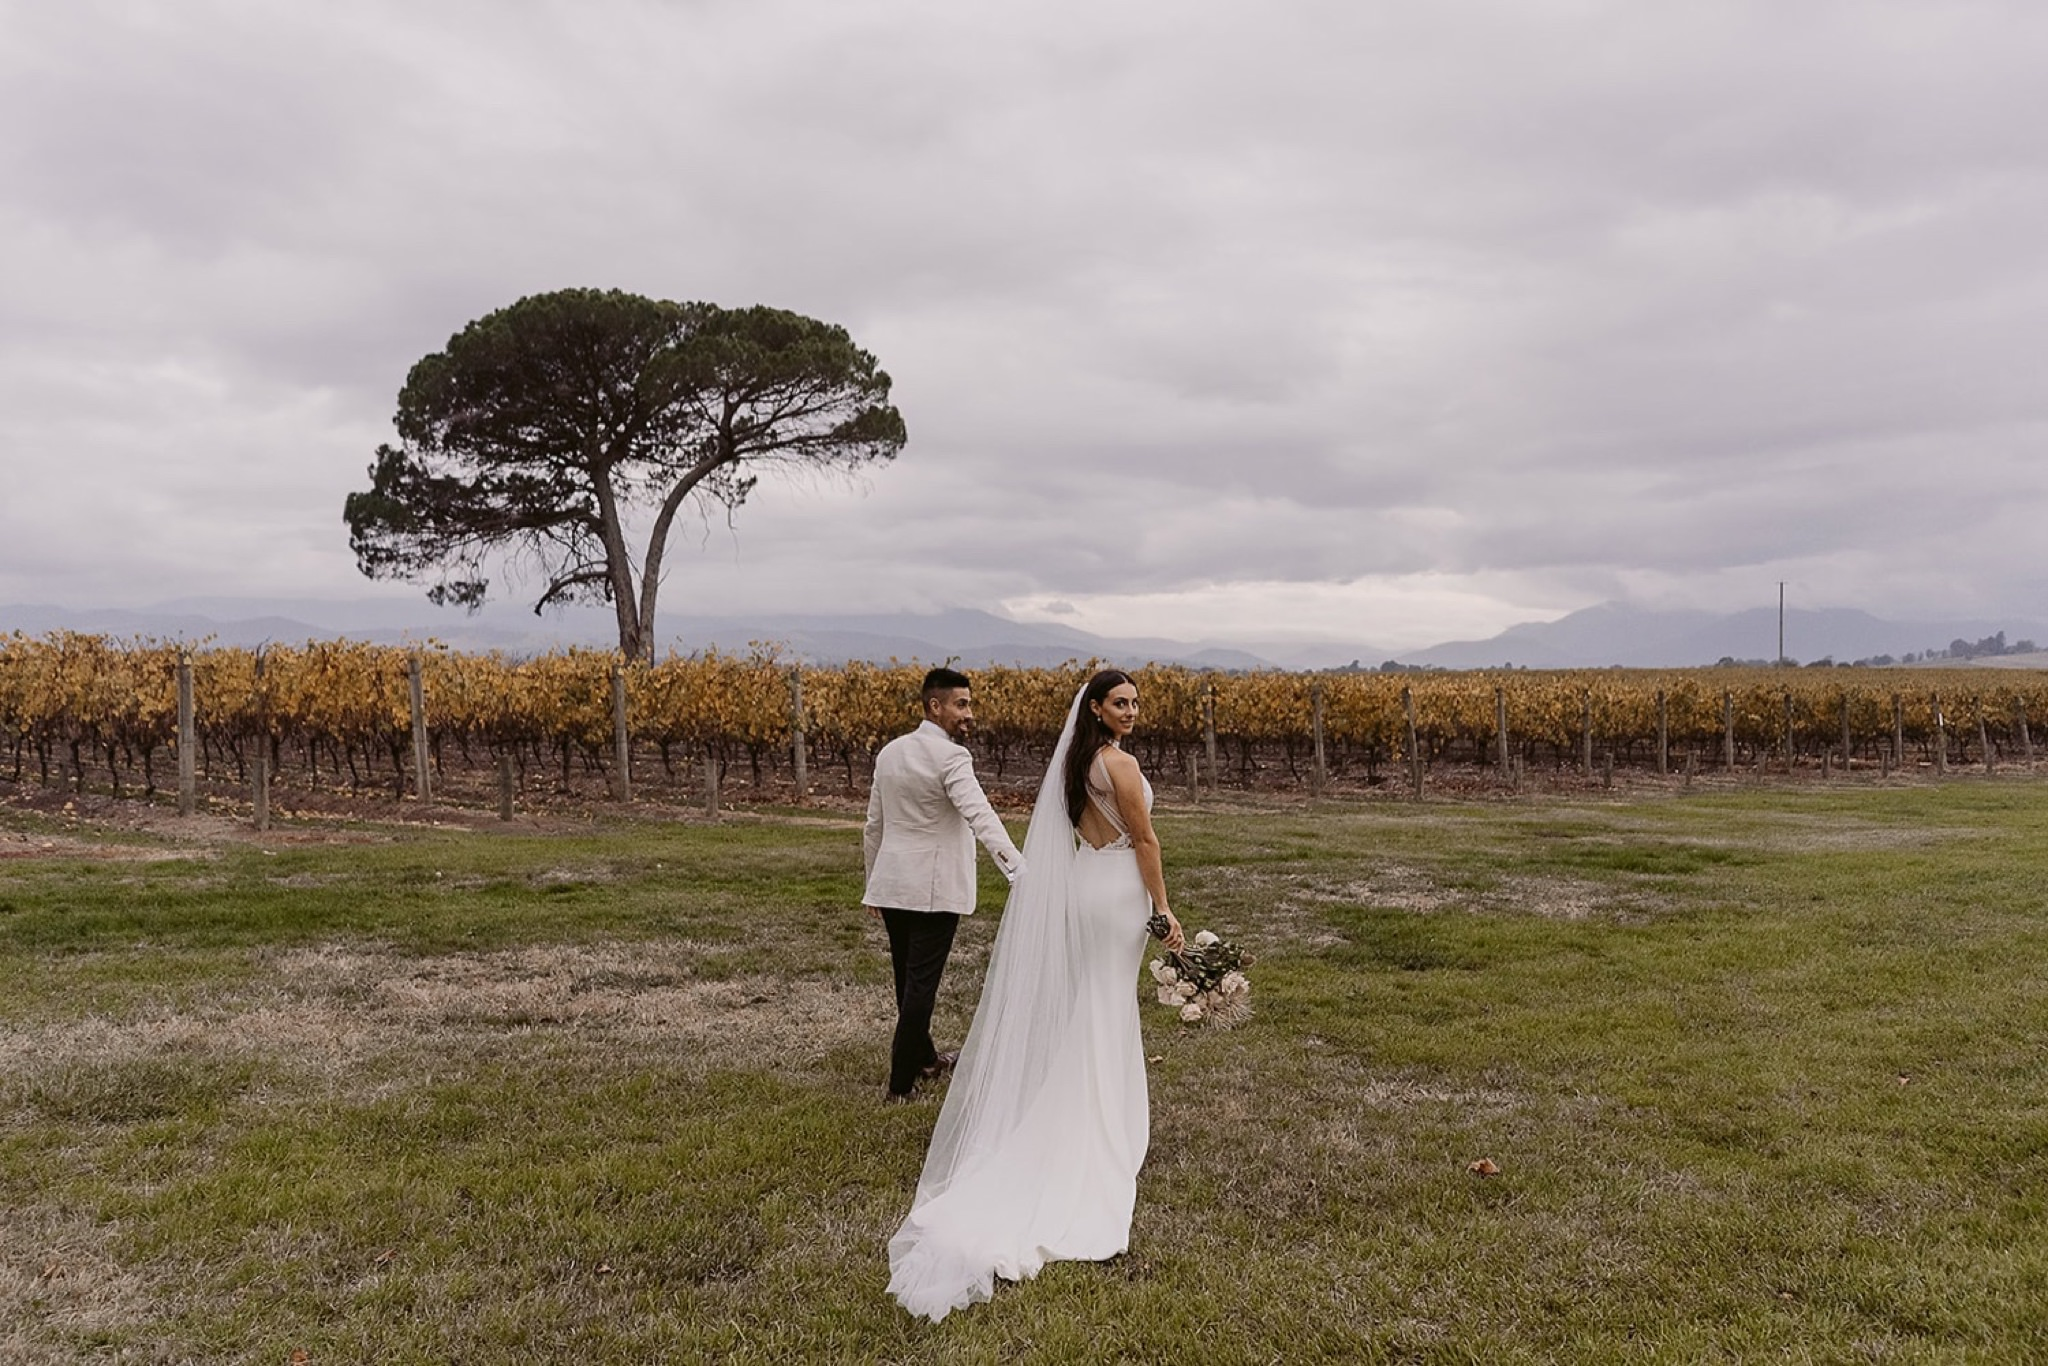 Stones of the Yarra Valley wedding photographer Ashleigh haase98.jpg